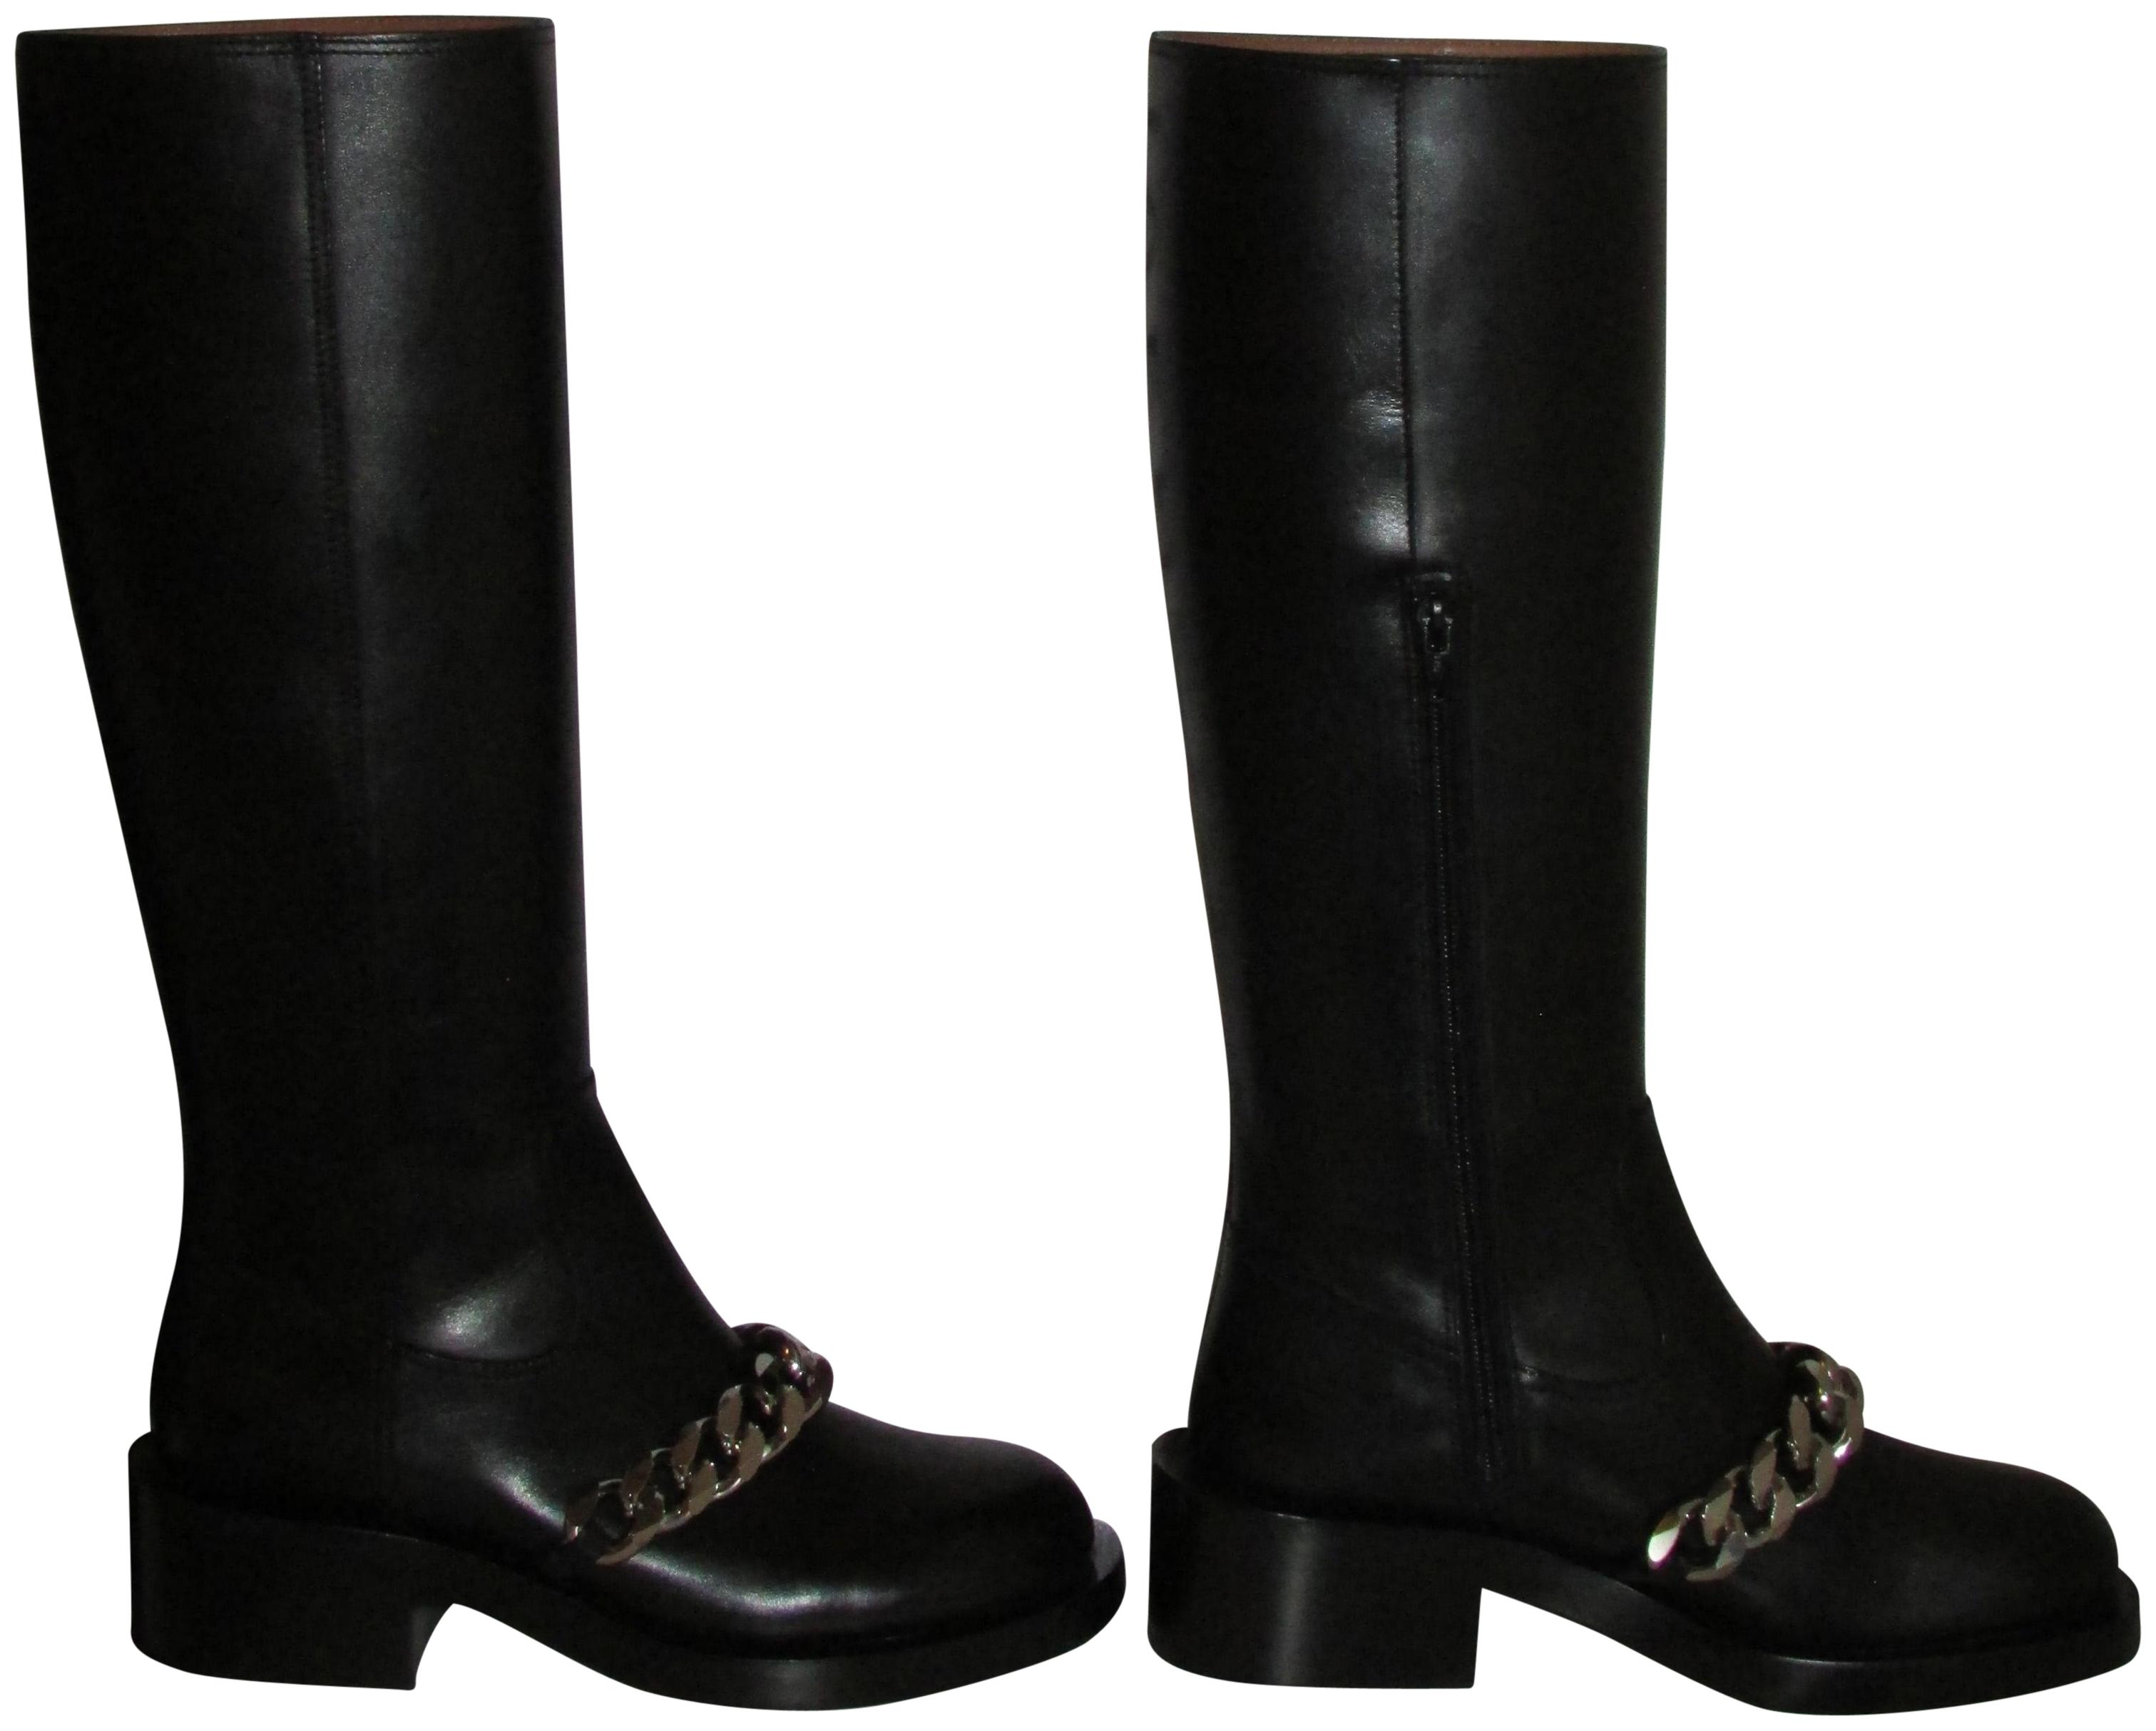 Givenchy Black Leather Chain Trim Pira Boots/Booties Size EU 40 (Approx. US 10) Regular (M, B)